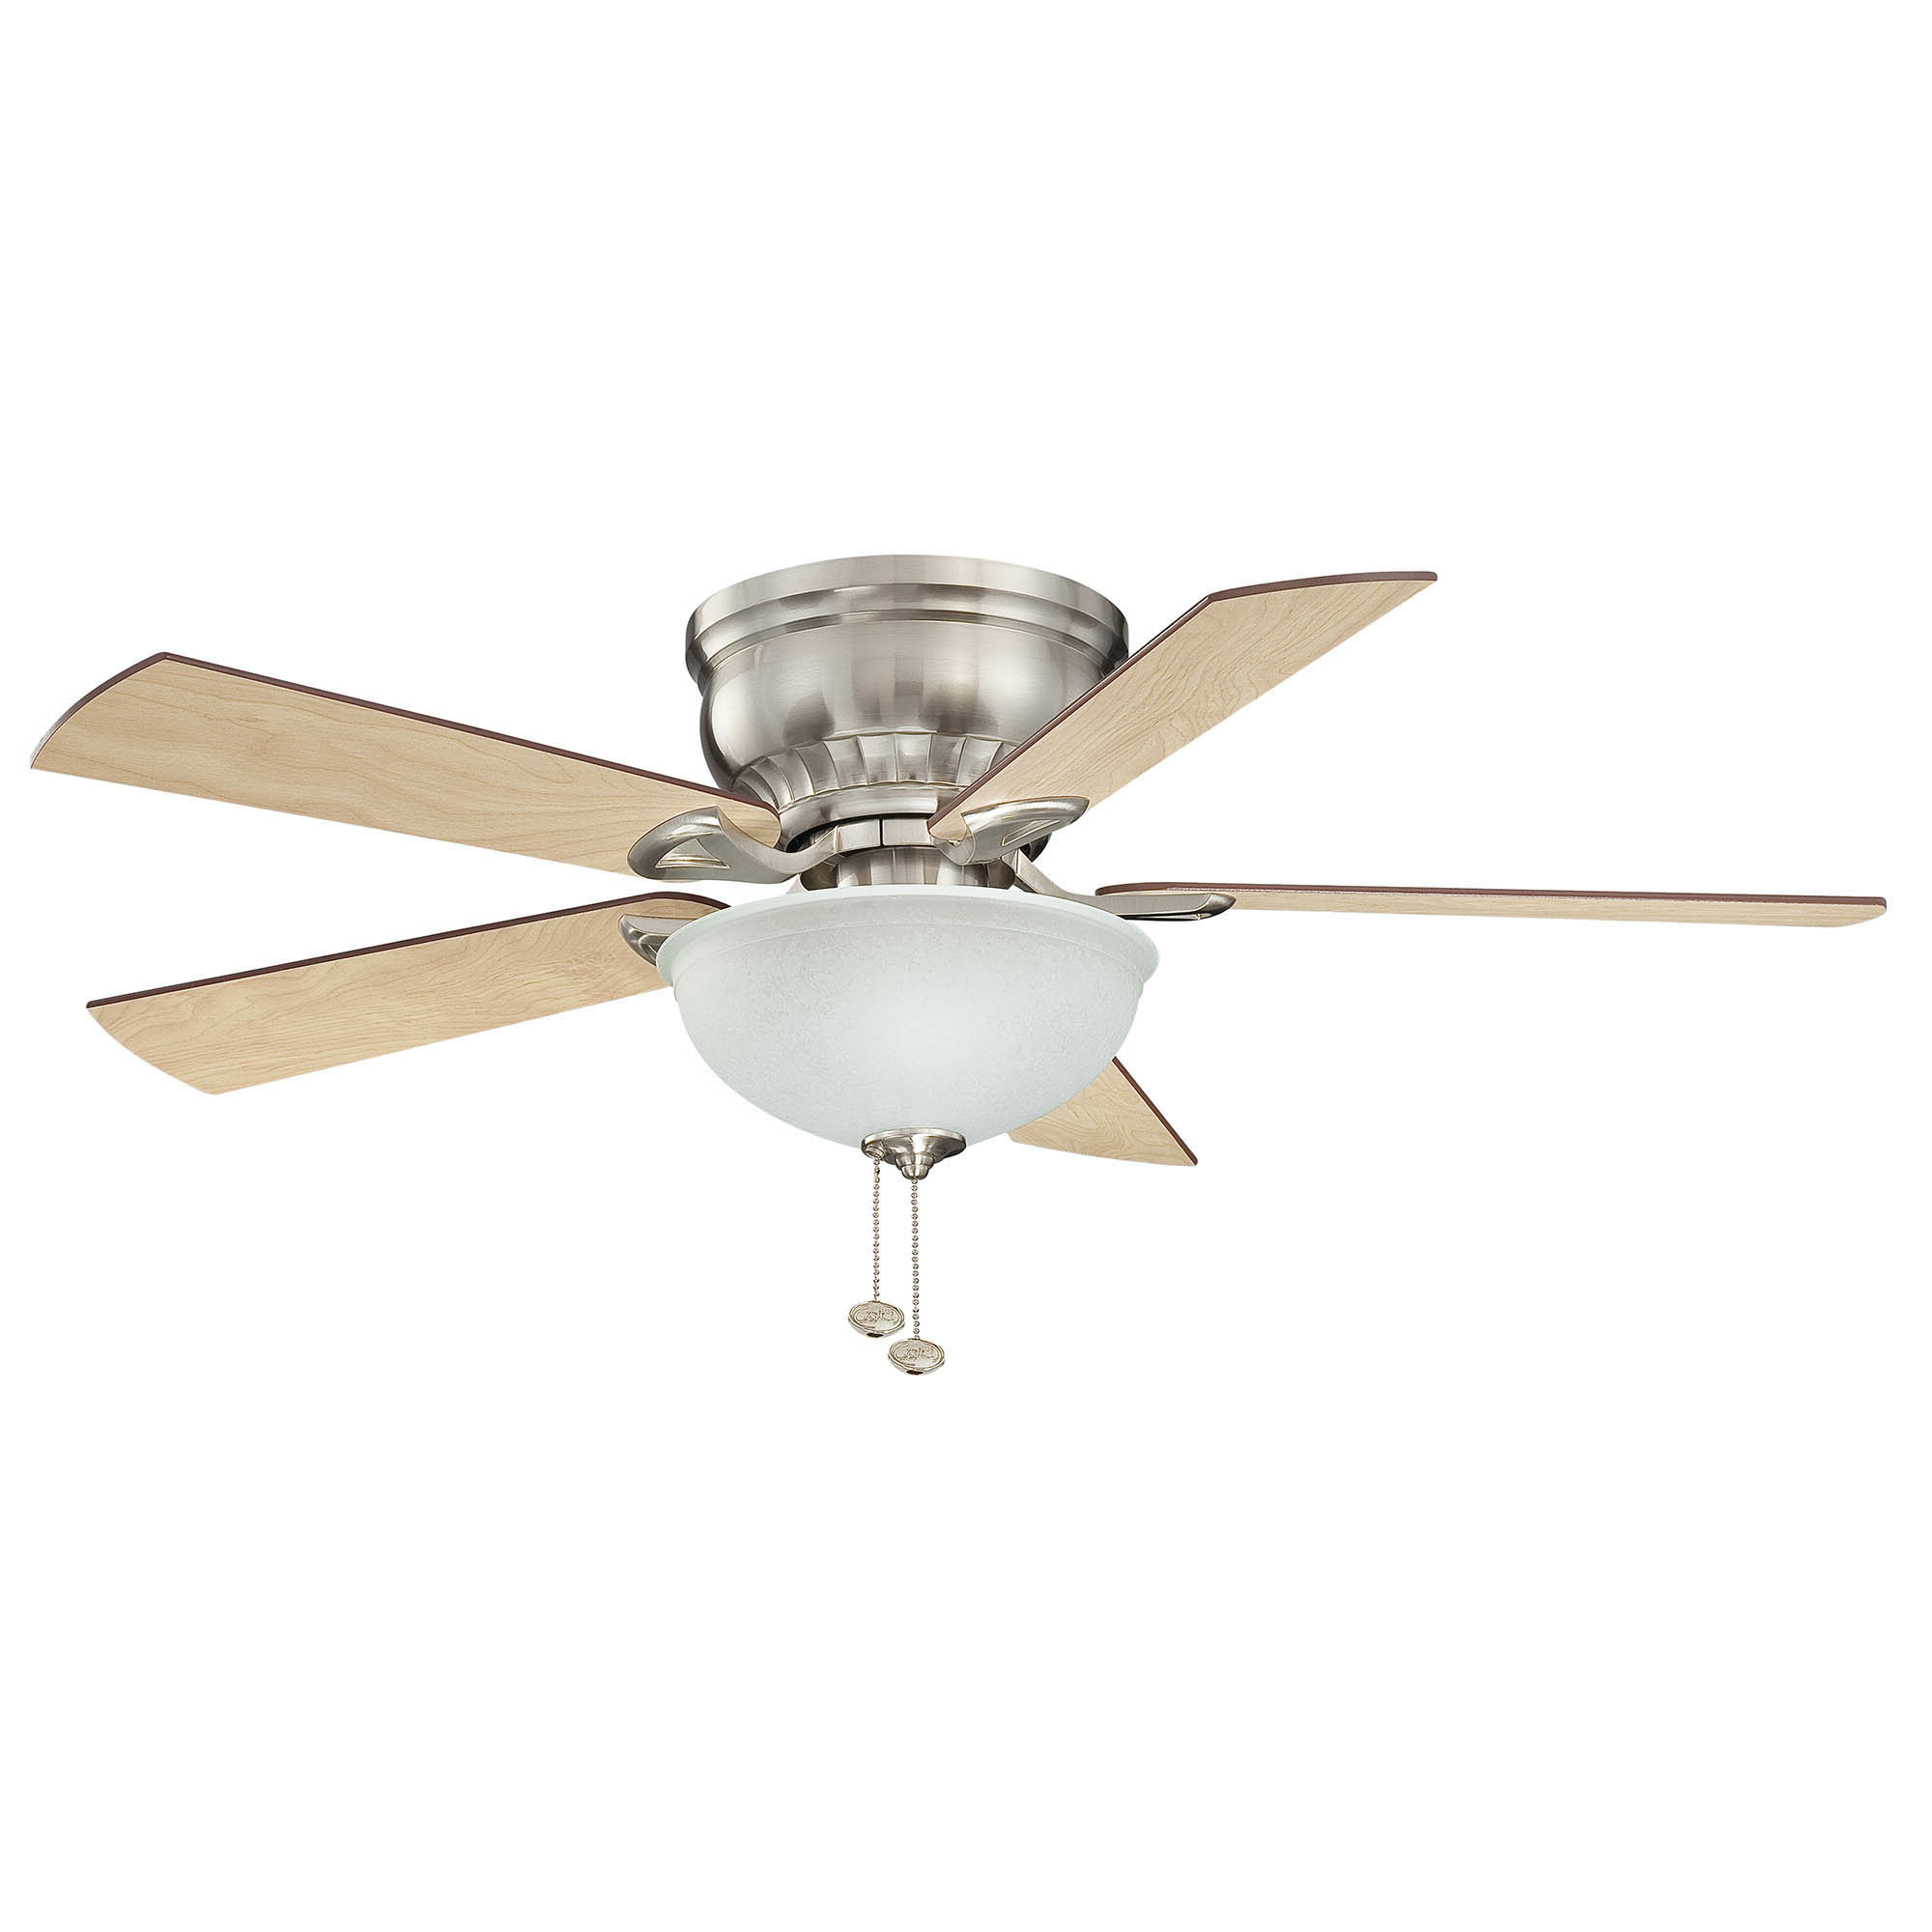 """Newest 44"""" Scruggs Flushmount 5 Blade Ceiling Fan, Light Kit With Regard To Eliora 5 Blade Ceiling Fans (View 18 of 20)"""